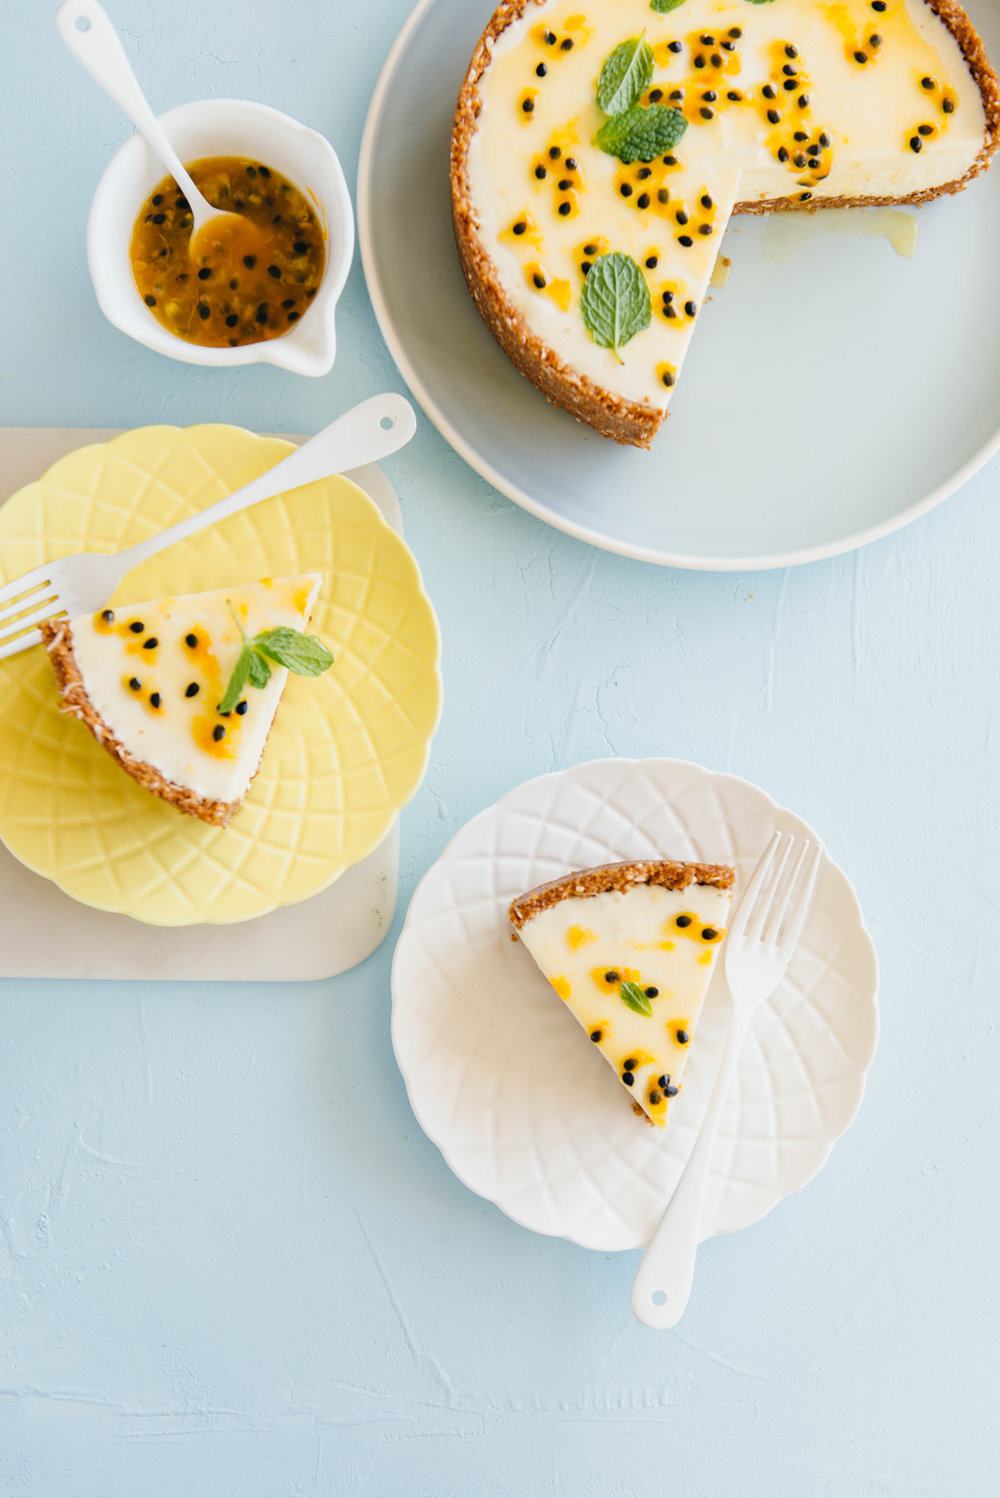 White Chocolate, Lime And Passion Fruit Cheesecake Recipe White Chocolate, Lime And Passion Fruit Cheesecake Recipe new photo